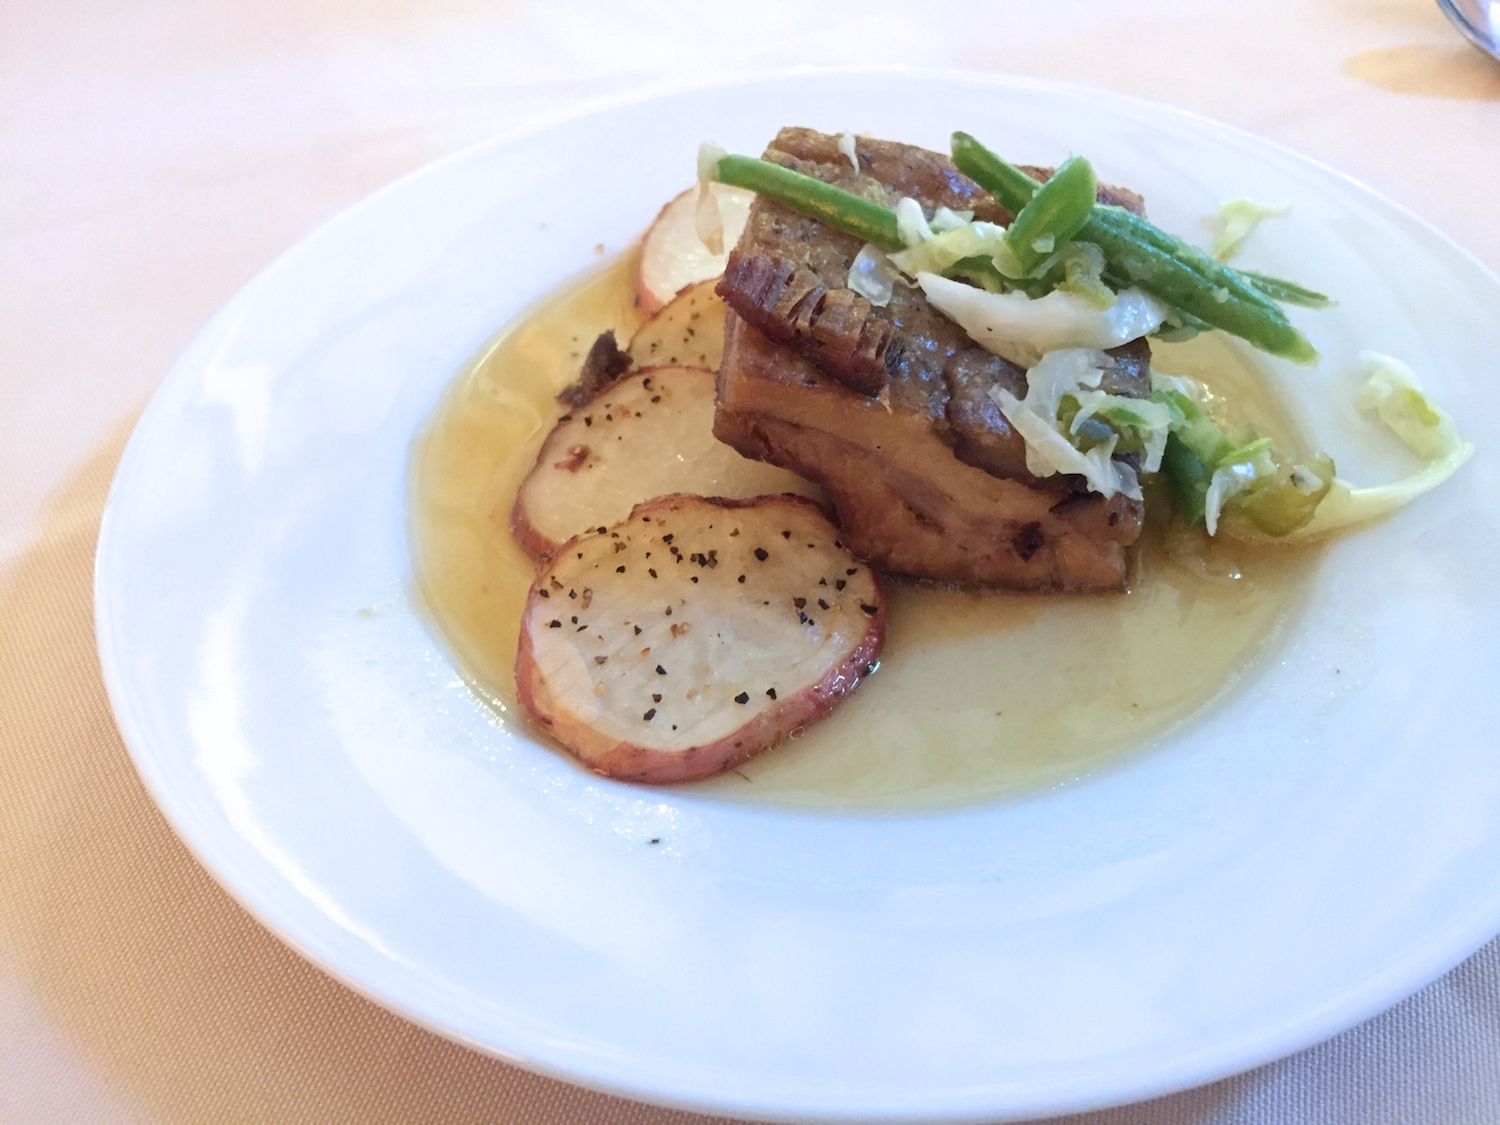 Braised pork shoulder at Harvestville Farm's farm-to-table dinner series in Donnellson, Iowa